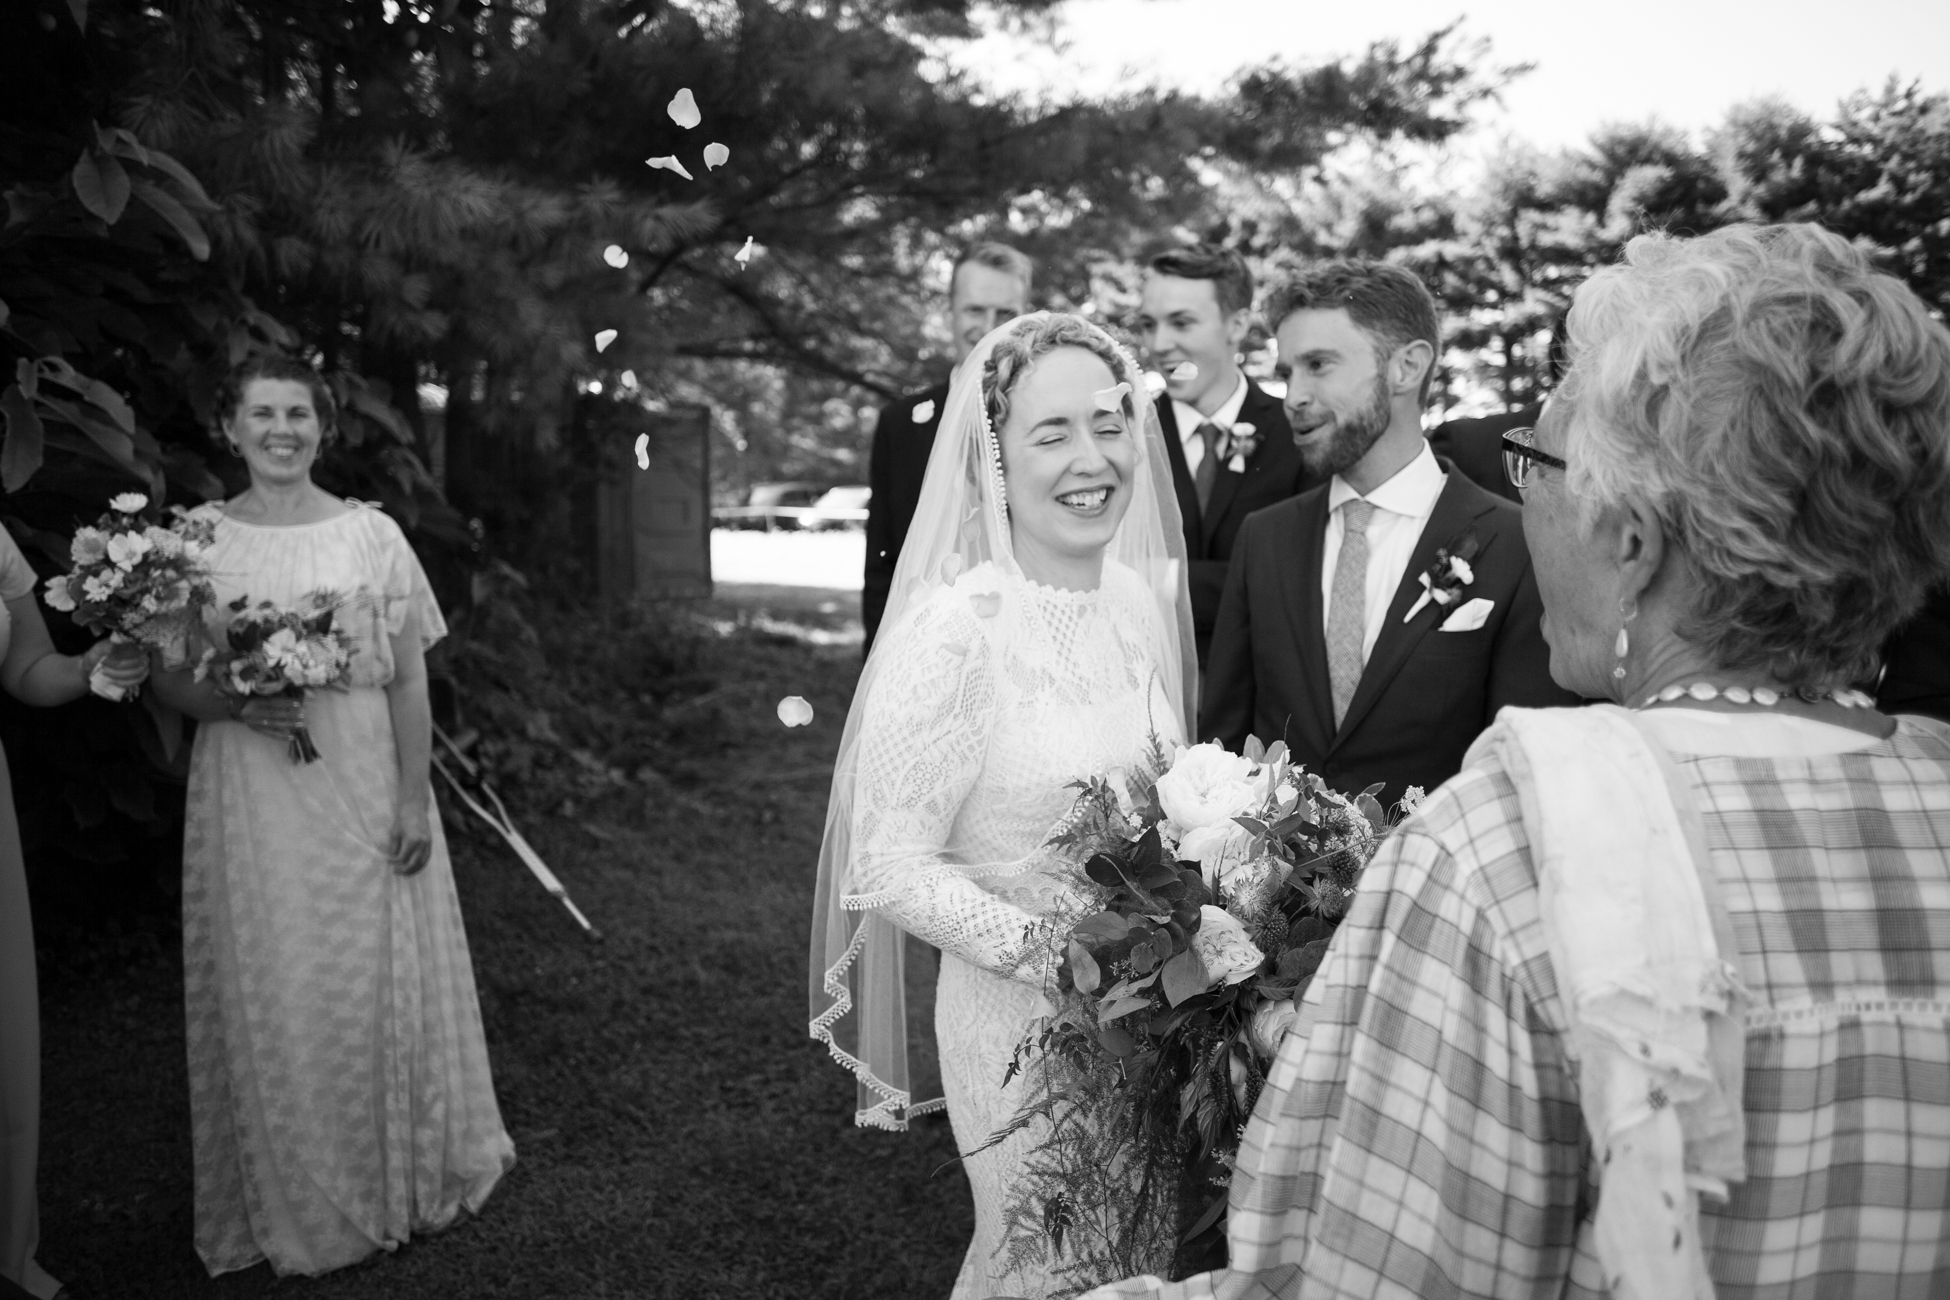 MaryFatimah and Noah's Summer Wedding at Bawa Muhaiyaddeen Fellowship Farm by Avi Loren Fox LLC-28.jpg